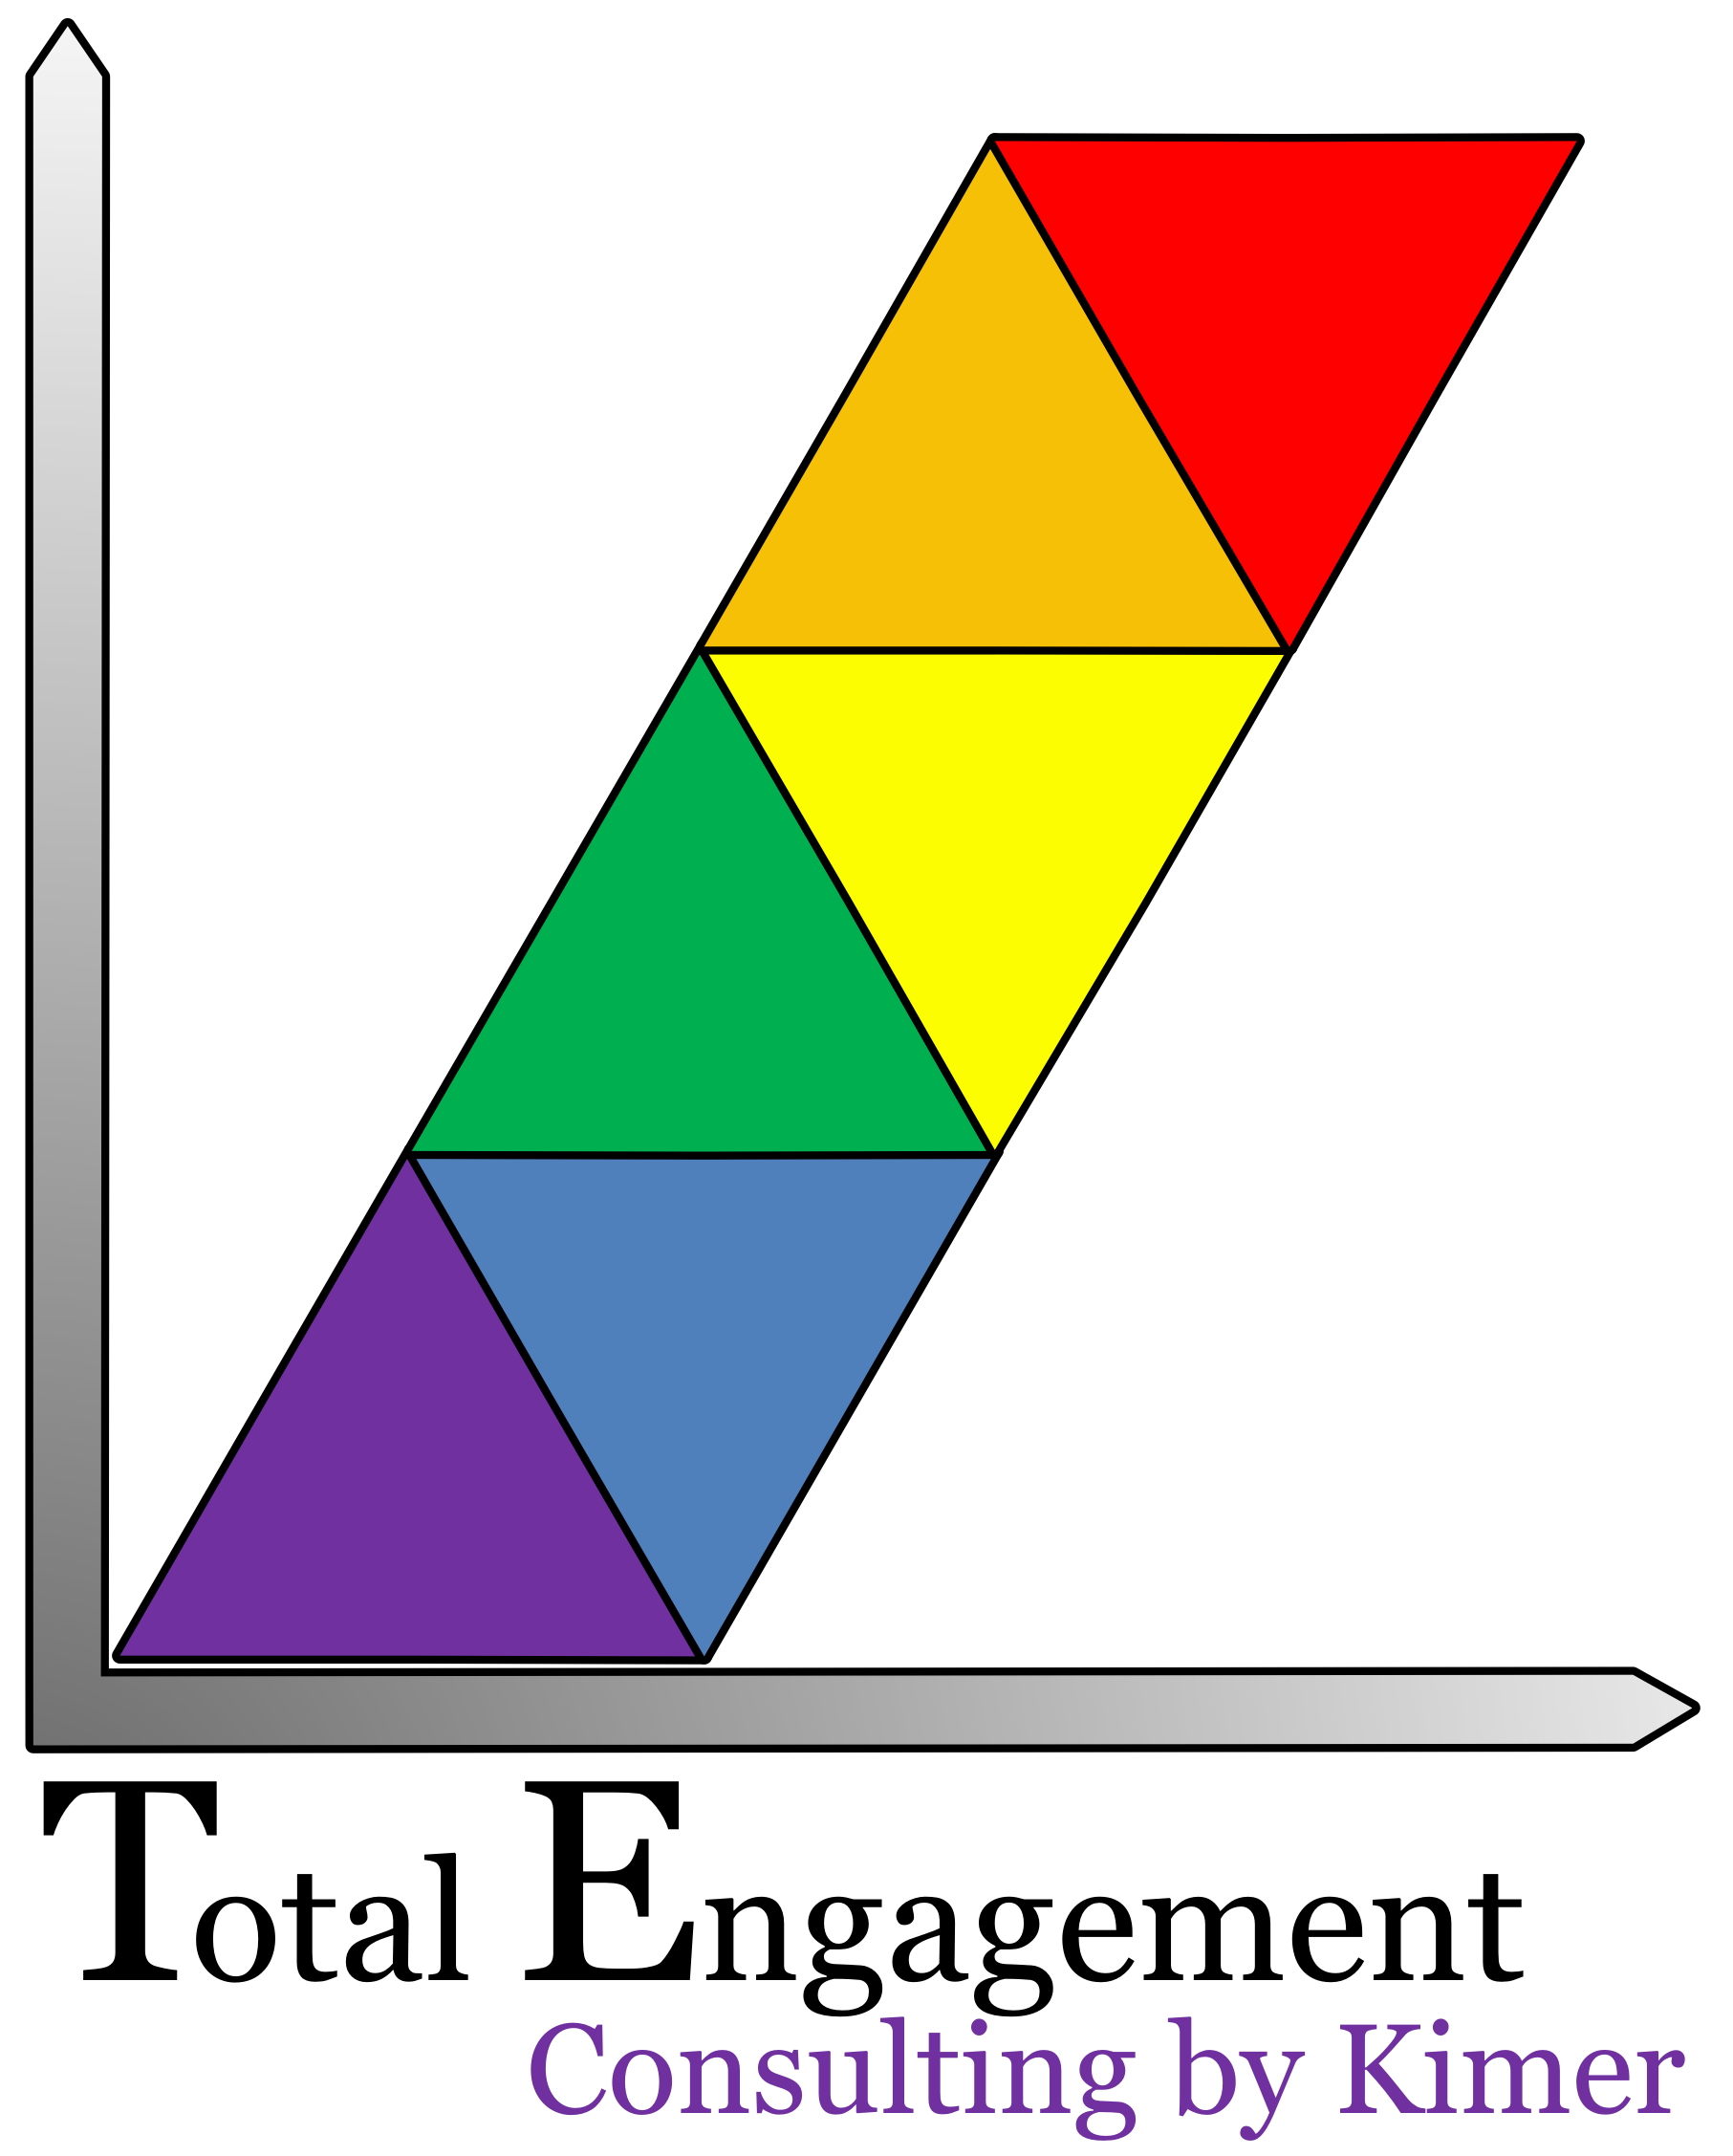 Total Engagement Consulting by Kimer